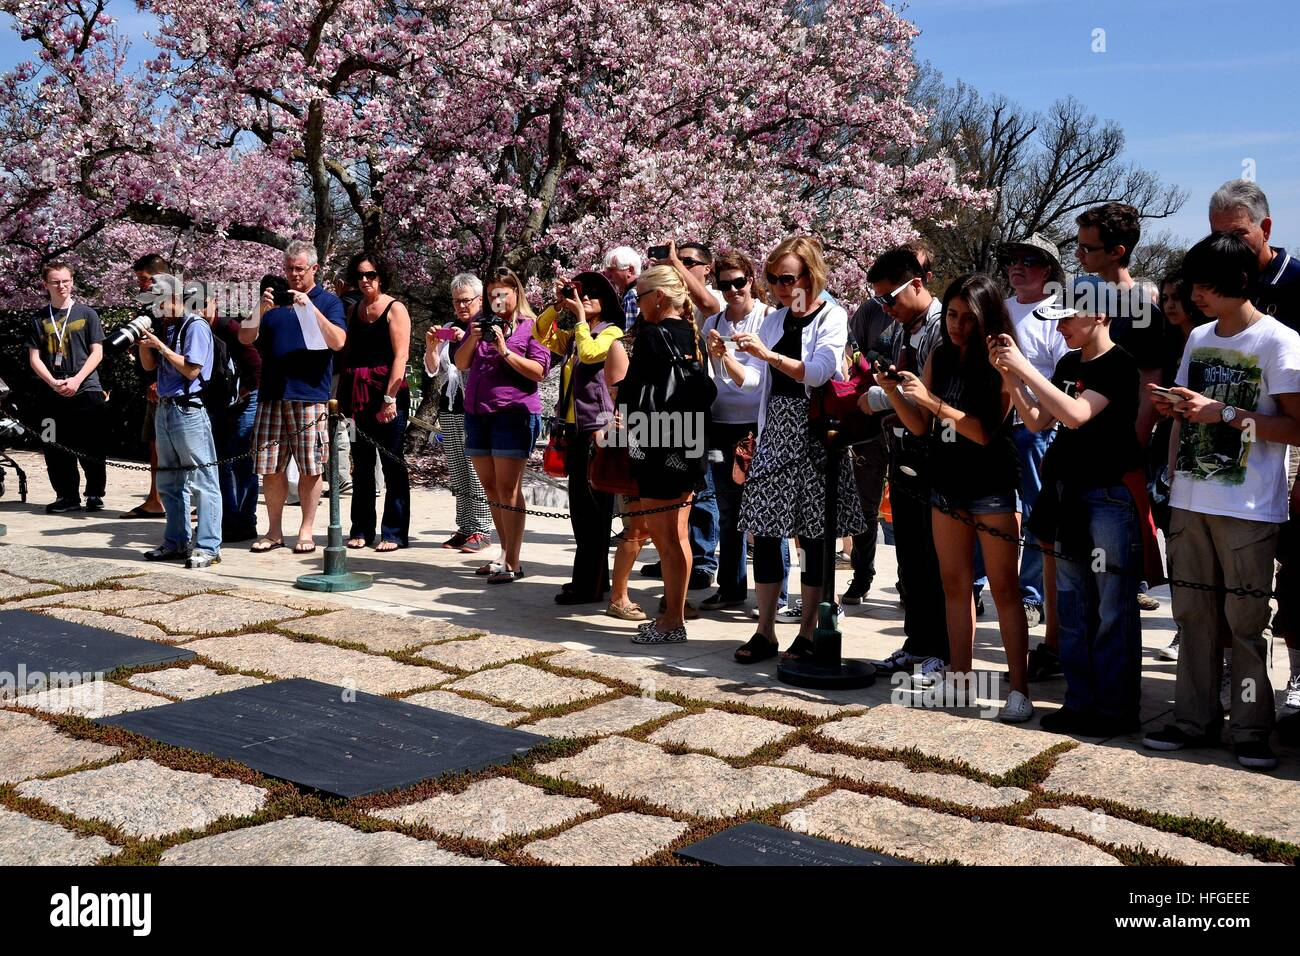 Arlington, Virginia - April 12, 2014: Tourists snapping photos at the gravesites of President John F. Kennedy, Jacqueline - Stock Image